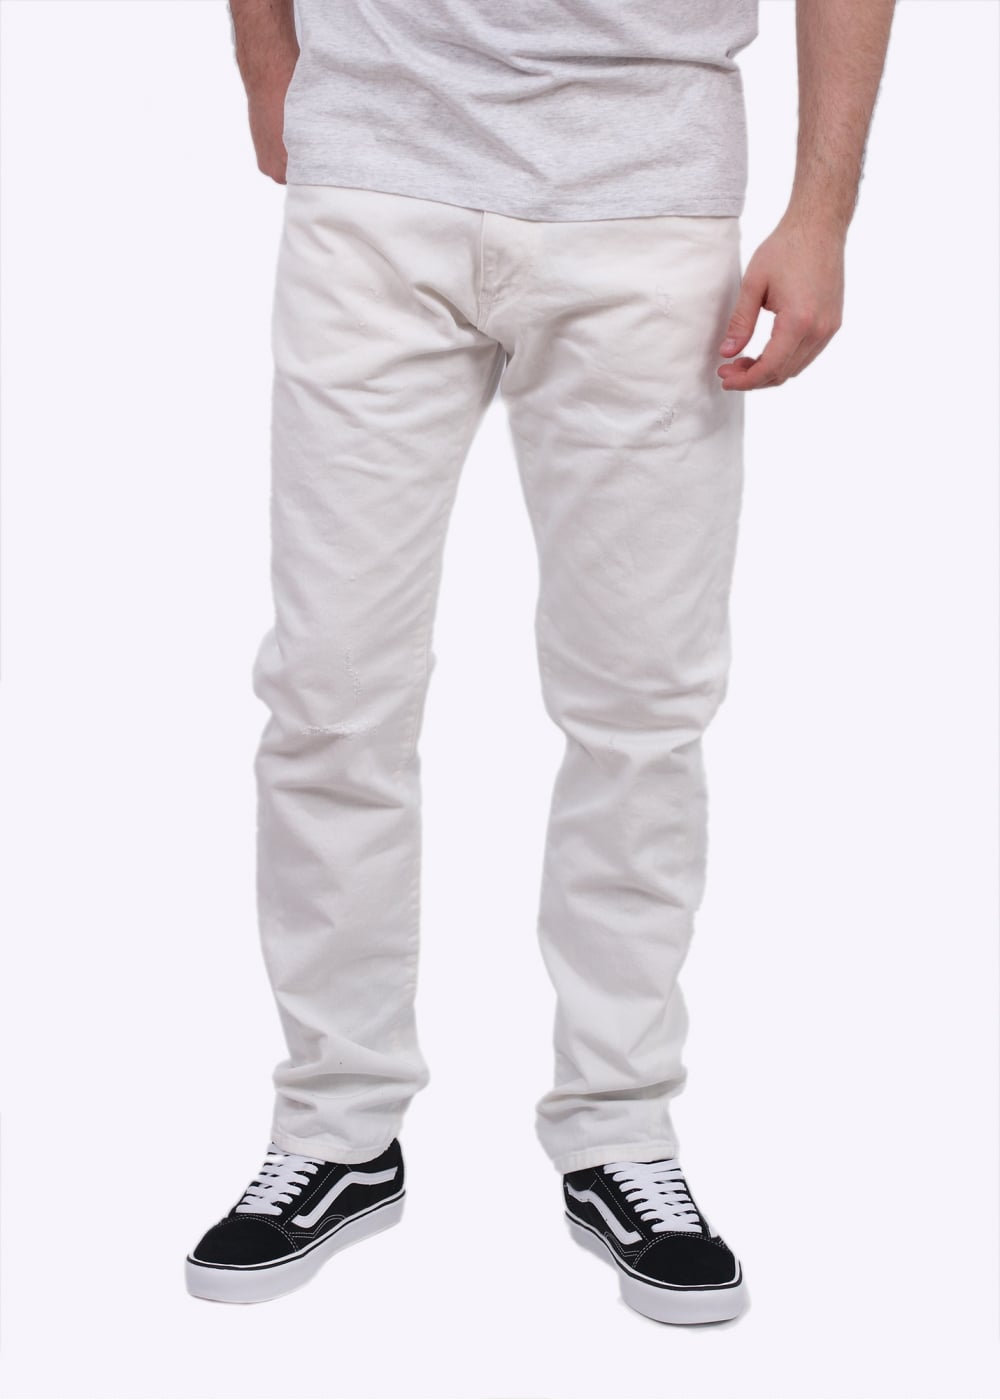 carhartt vicious pant white carhartt from triads uk. Black Bedroom Furniture Sets. Home Design Ideas